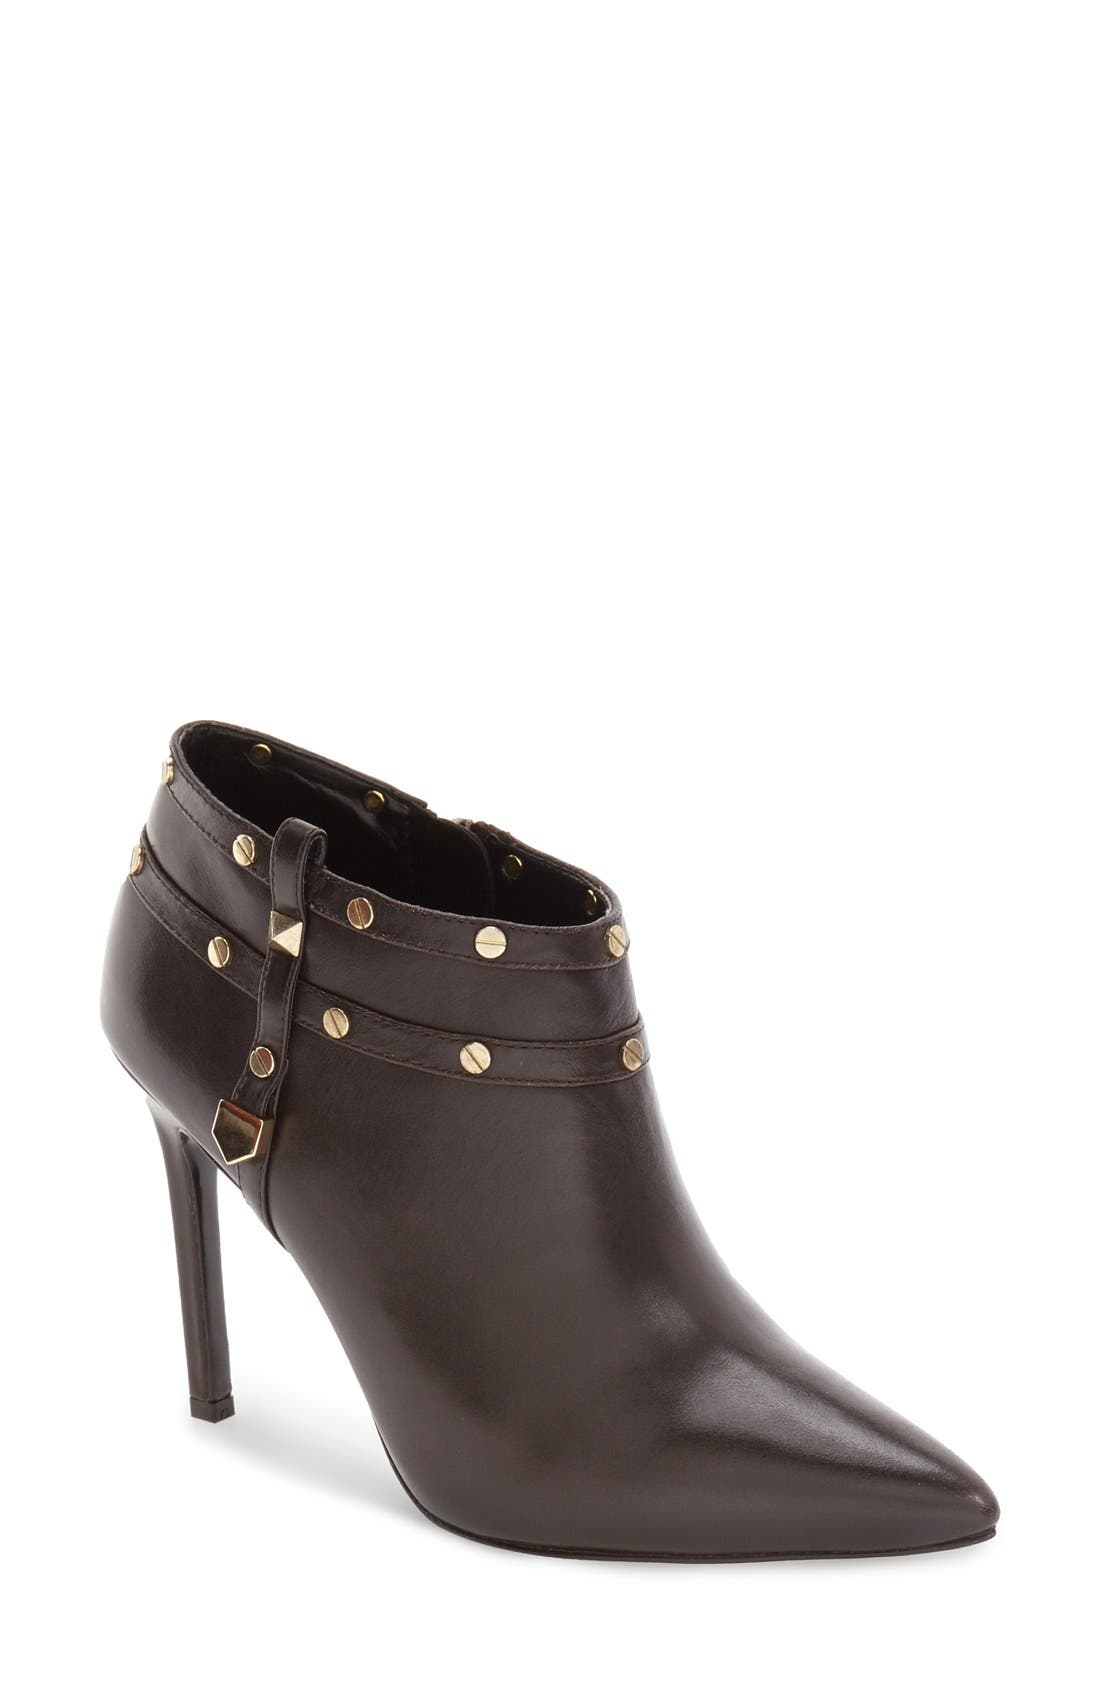 Main Image - Charles David 'Cathy' Pointy Toe Bootie (Women)